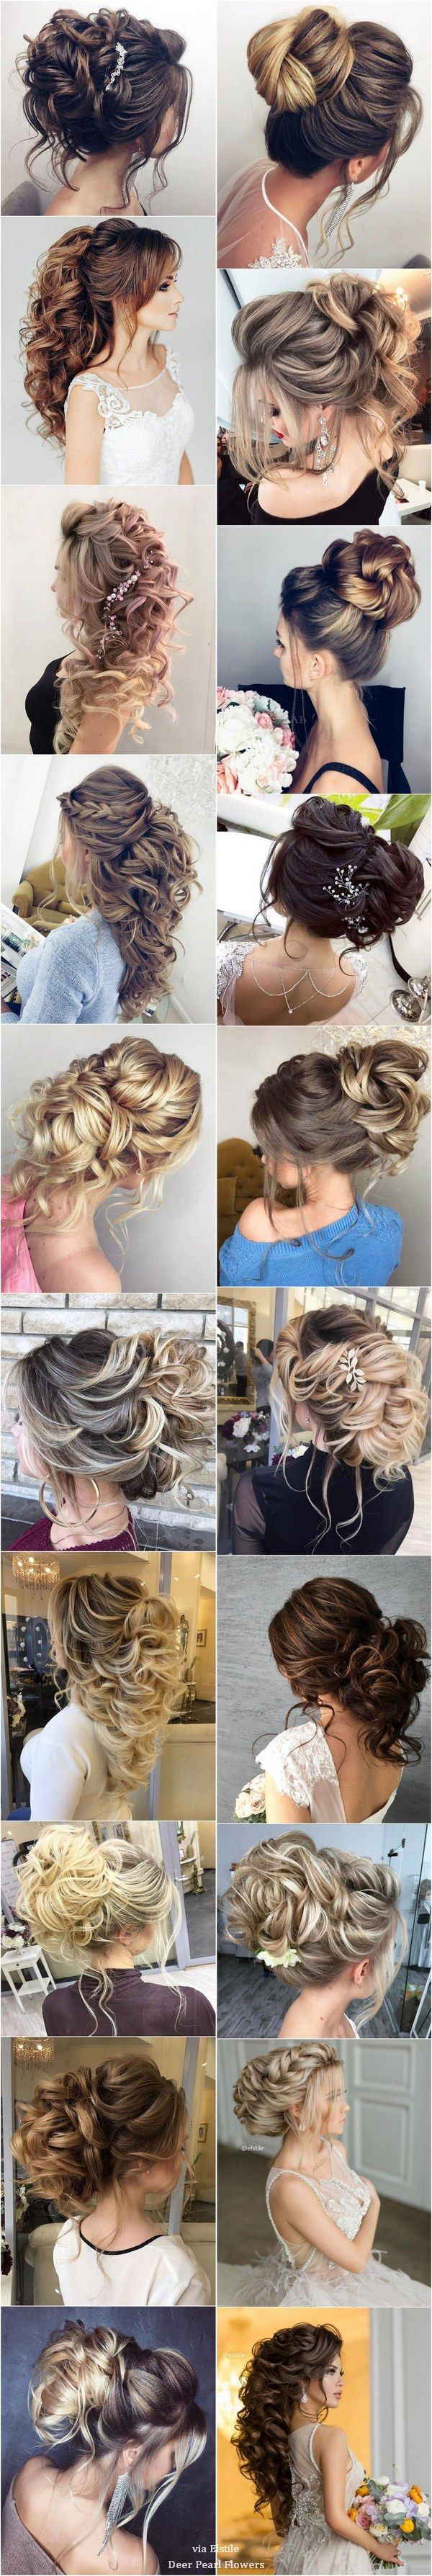 Elstile Long Wedding Hairstyle Inspiration / www.deerpearlflow……